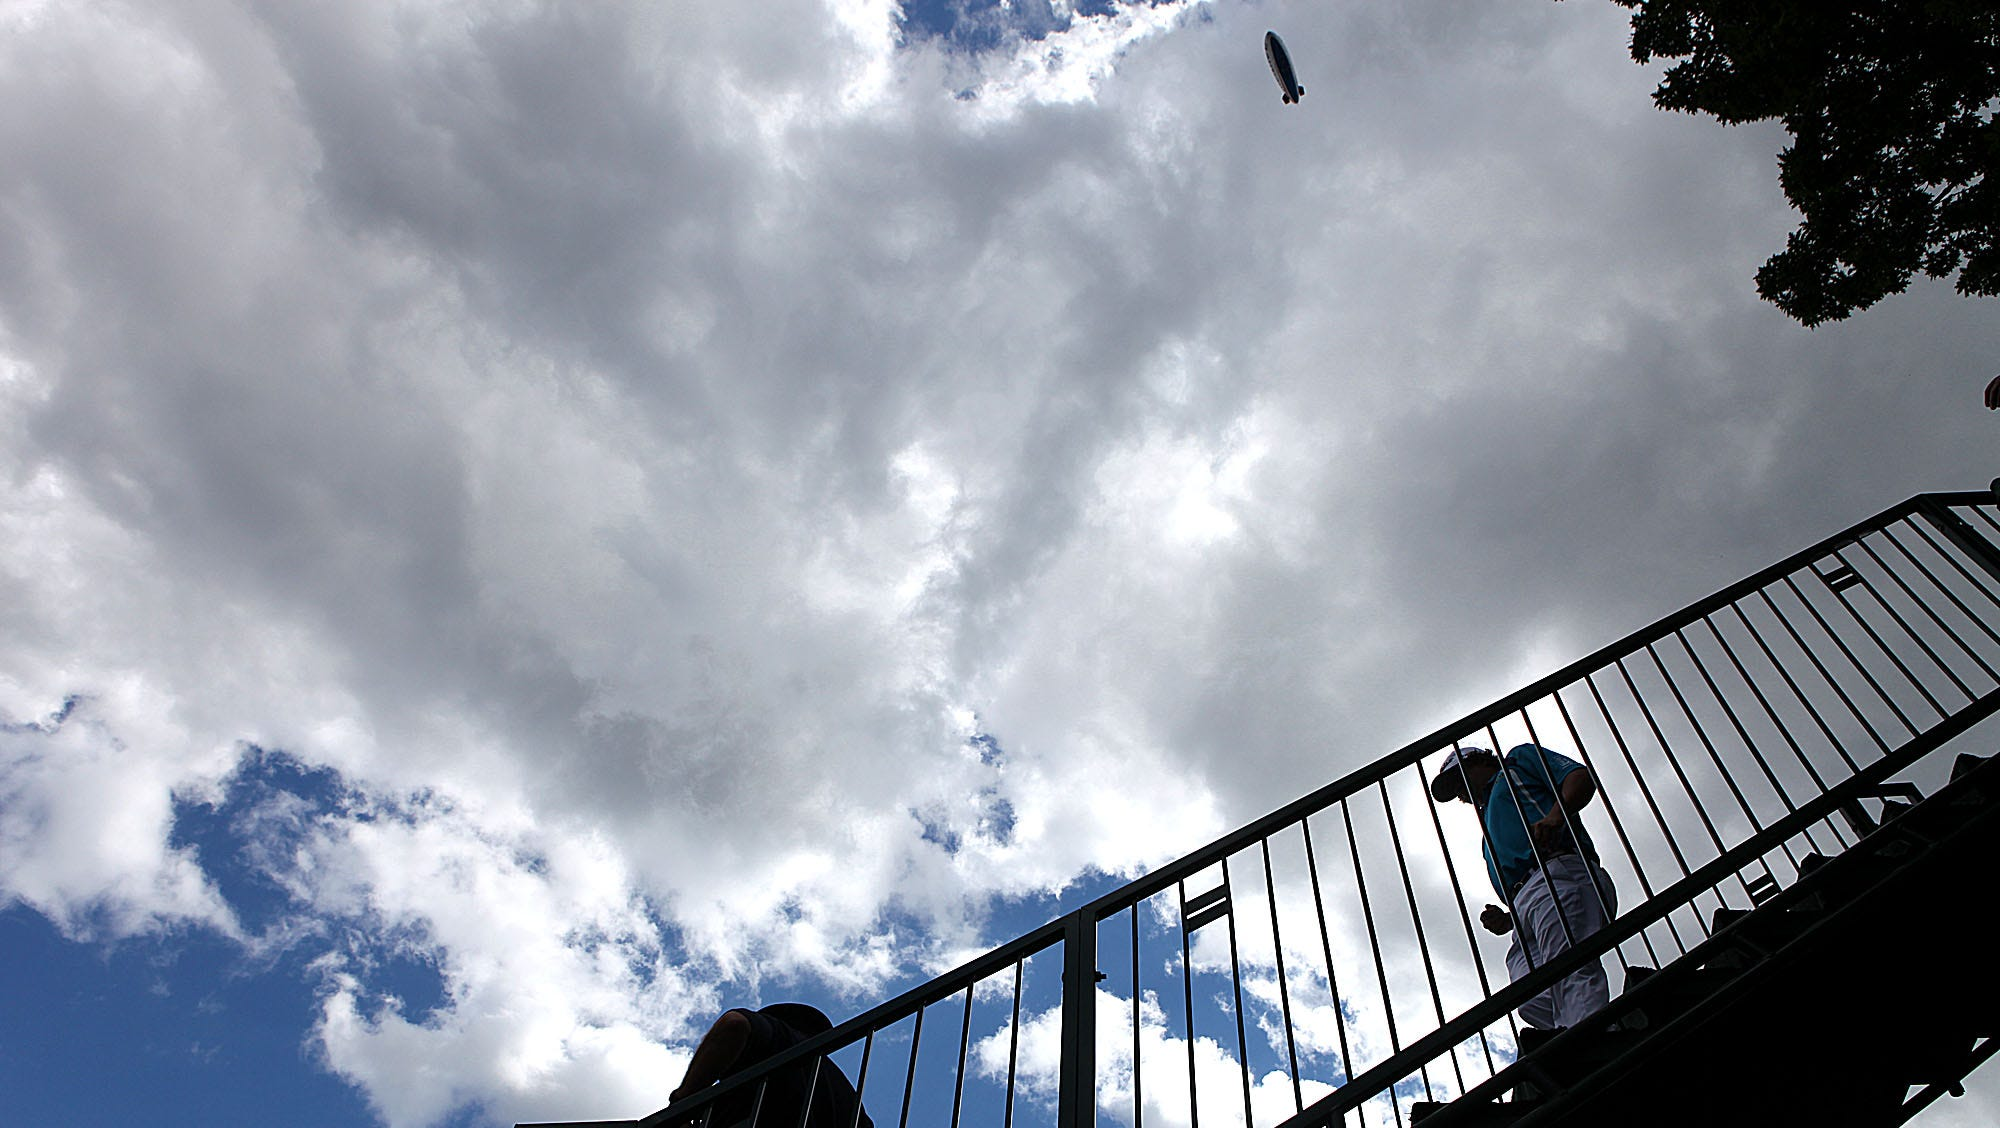 Jaosn Dufner walks down the steps to the first hole as the blimp hovers above.